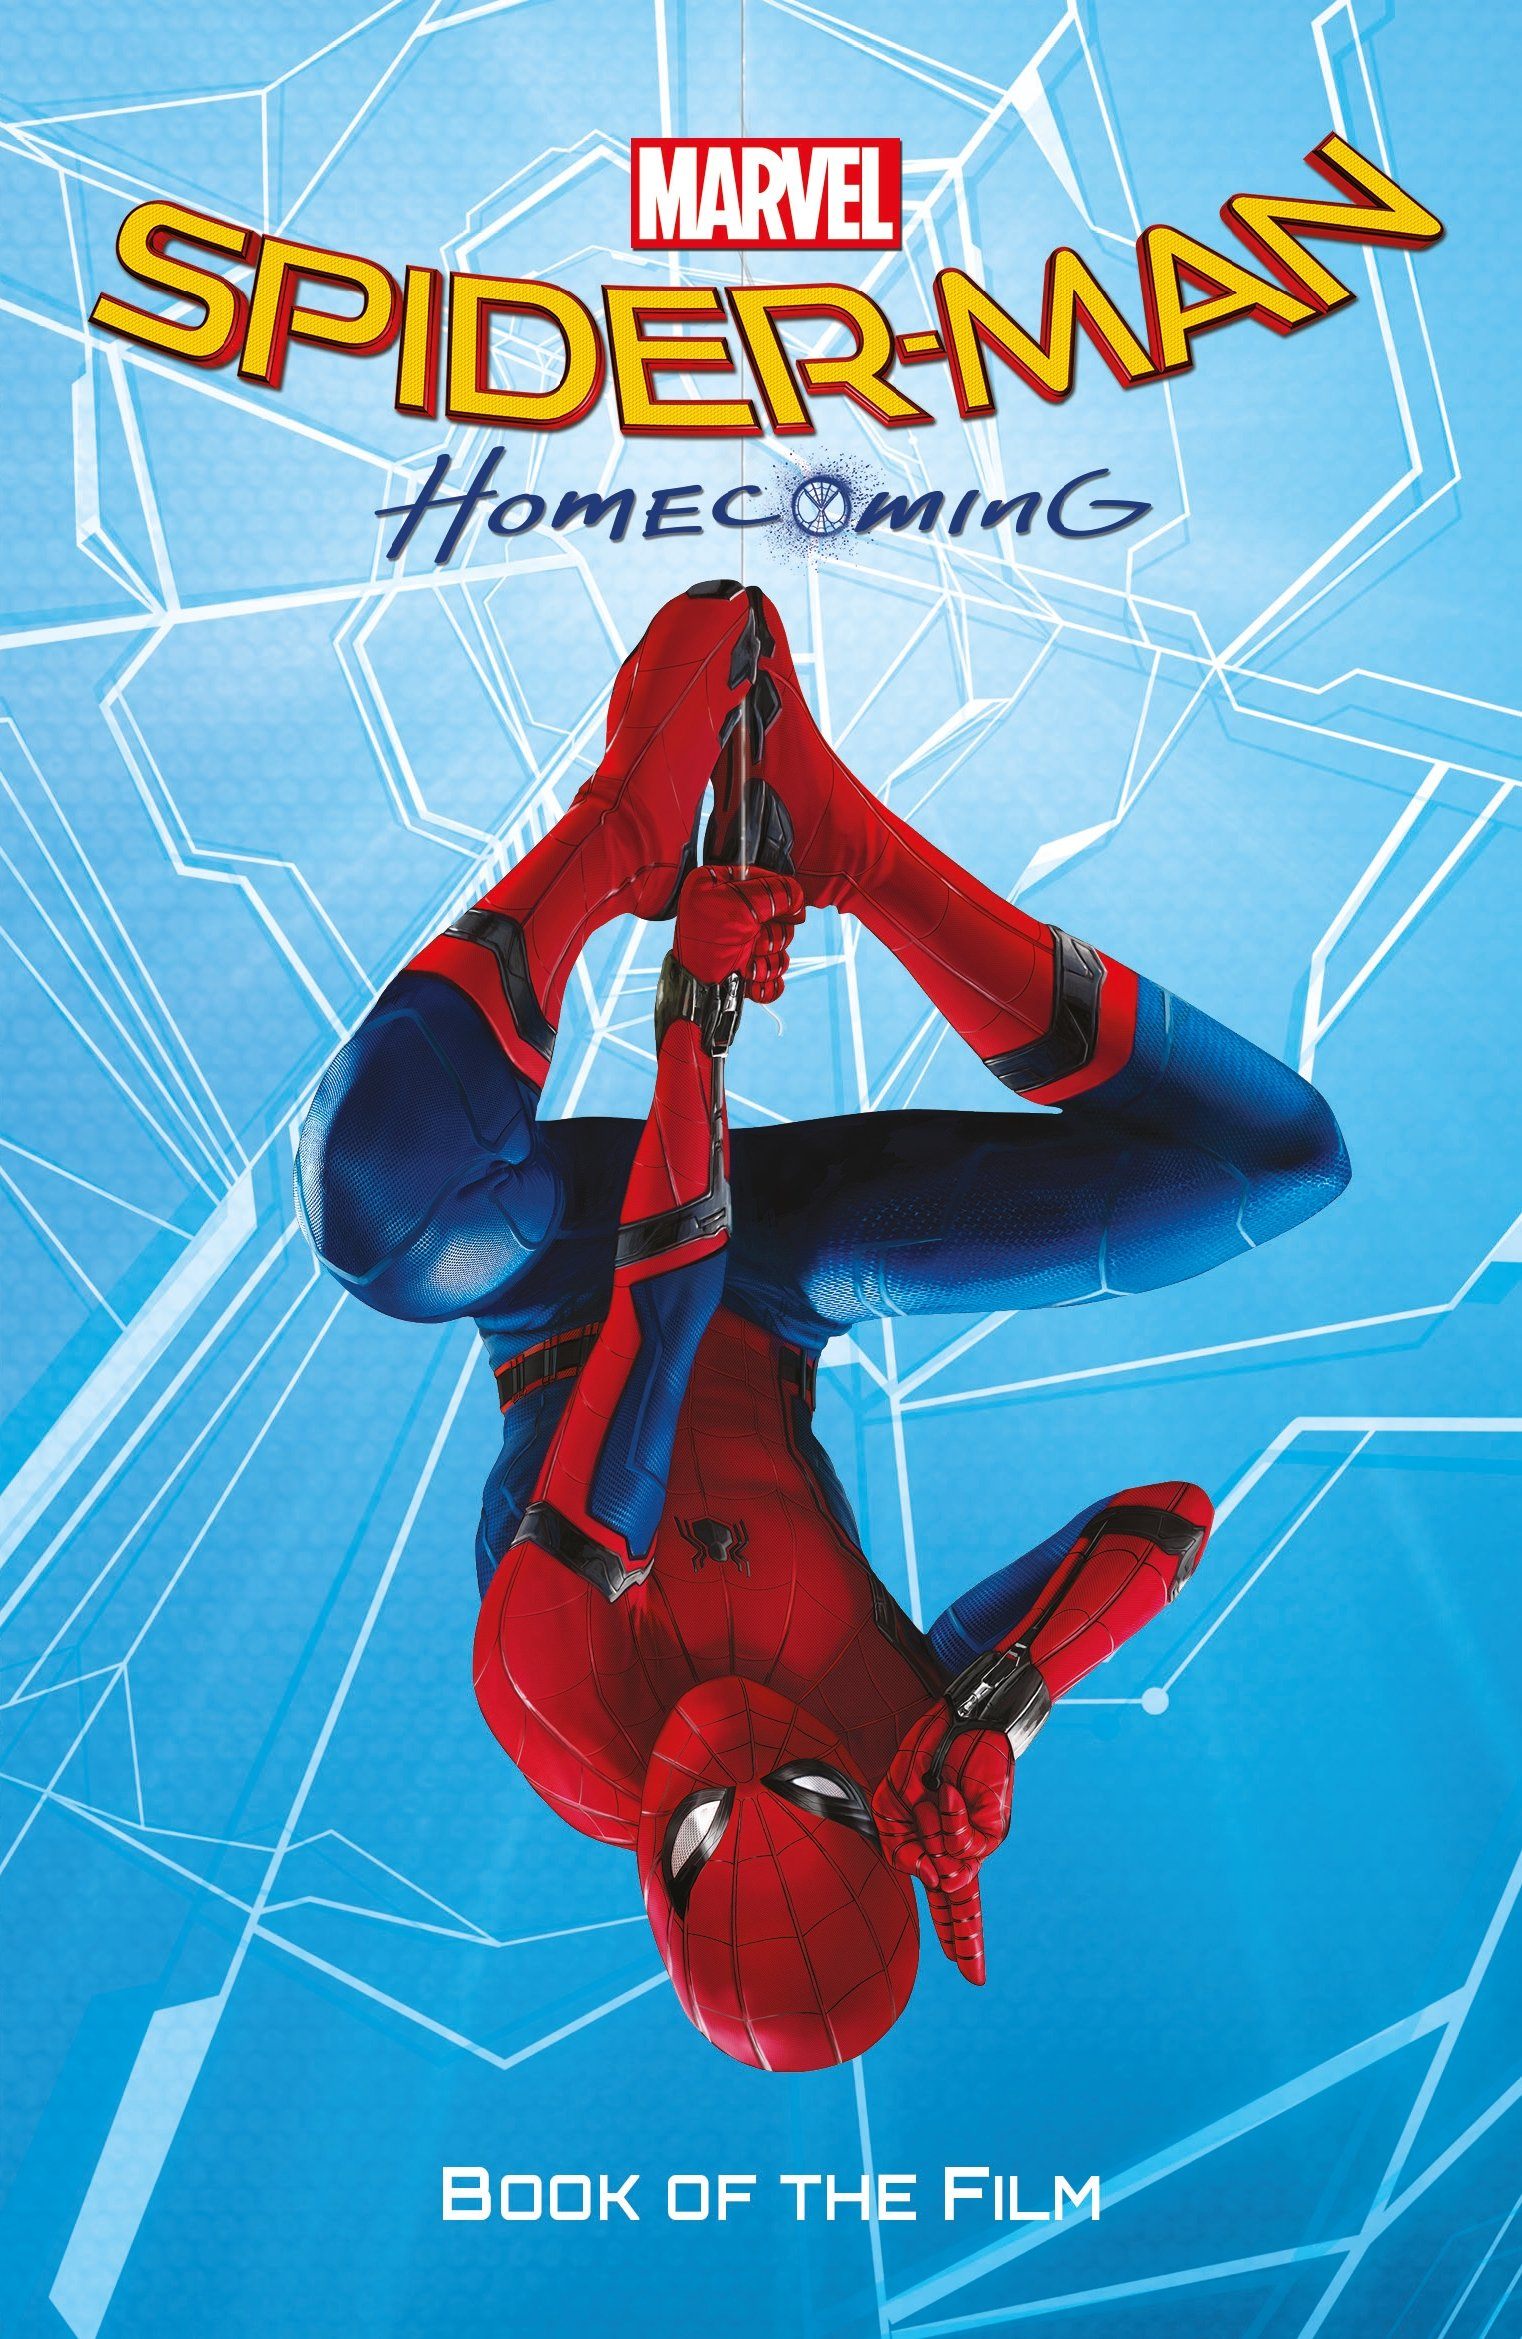 0331b9f9d9 Spider-Man  Homecoming Book of the Film Paperback – 6 Jul 2017